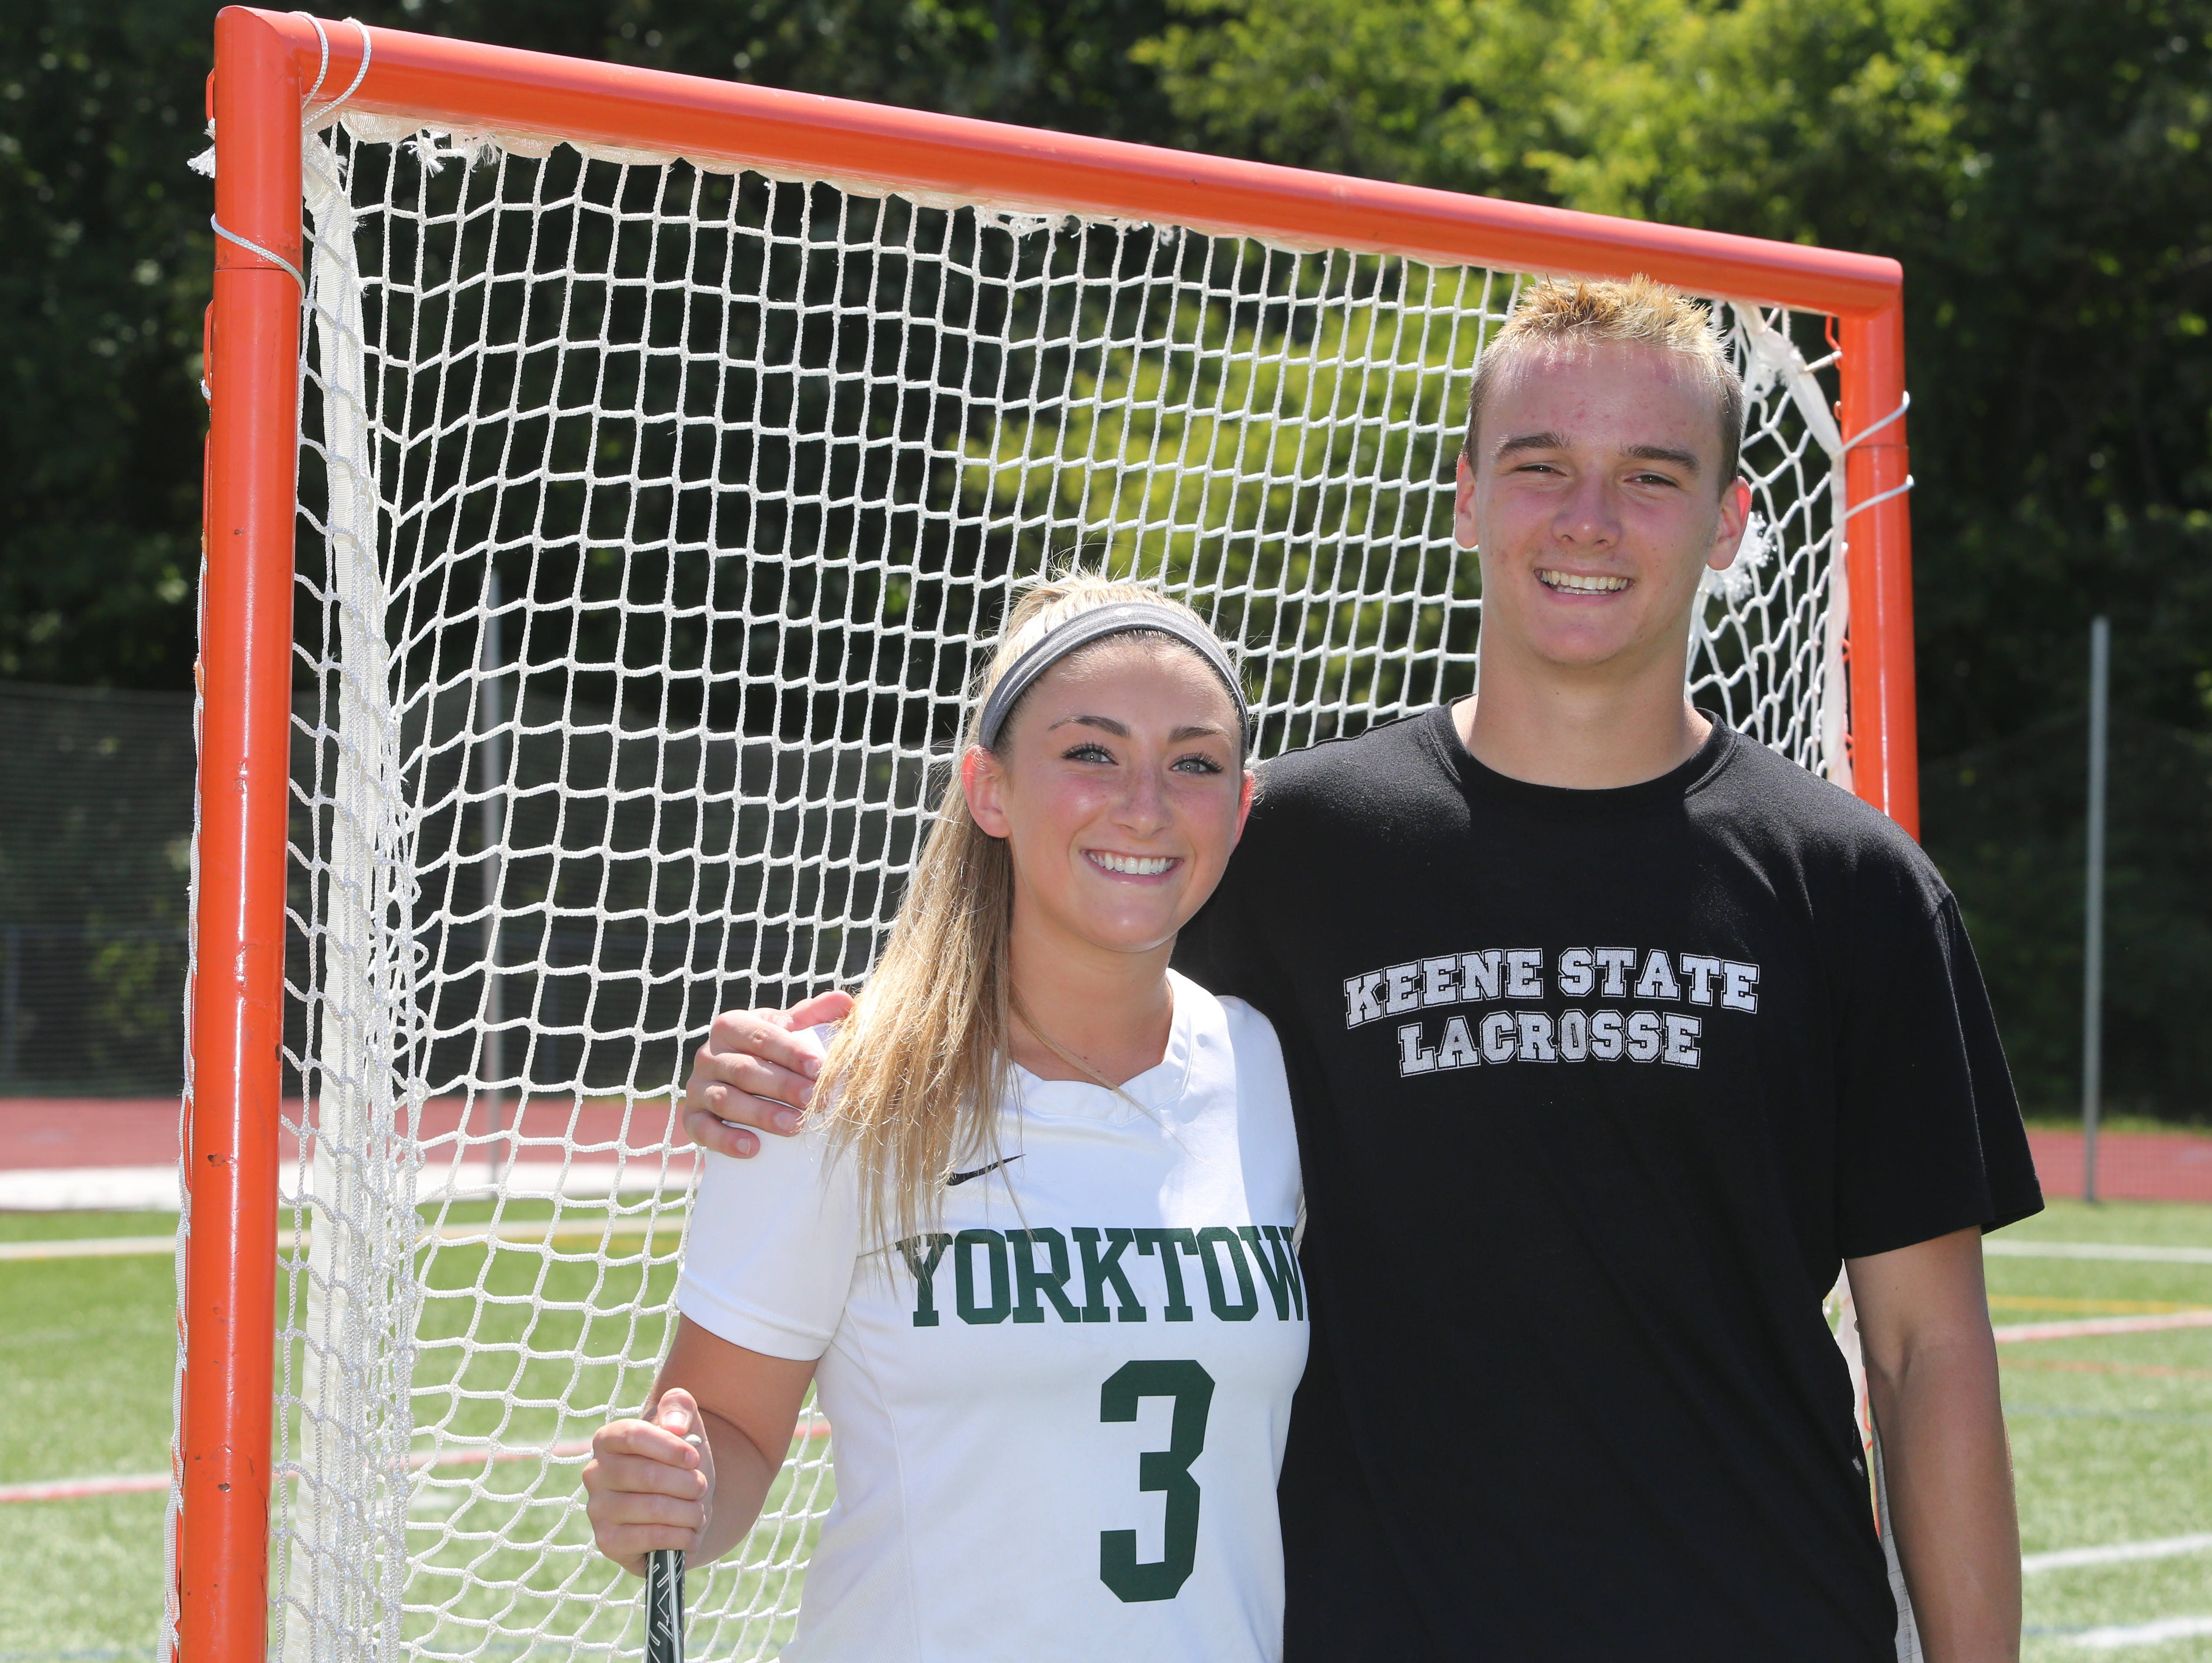 Casey Duff and Liam Donnelly, Yorktown High School lacrosse players, were both named Journal News players of the year. Here they are pictured at the school, June 17, 2016.